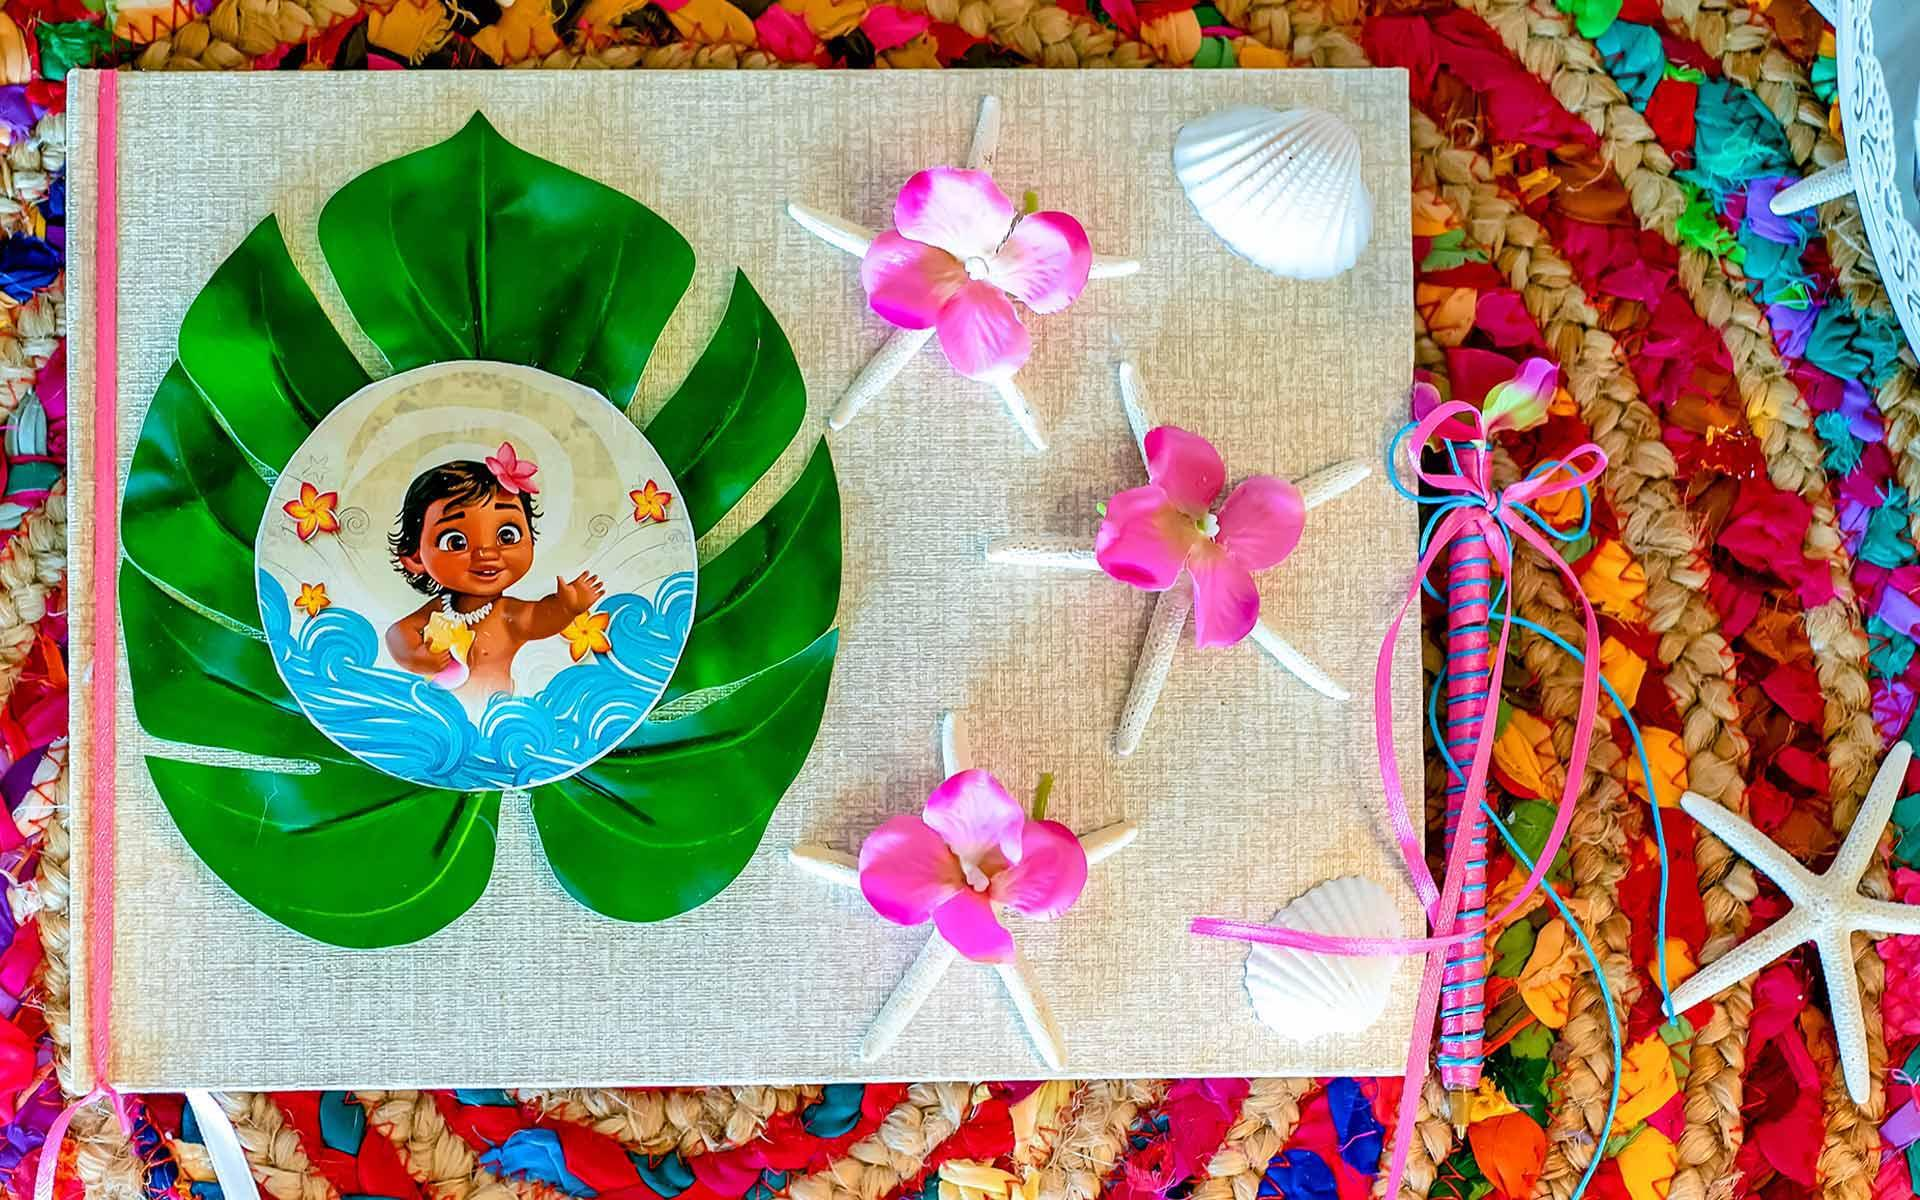 Tableware and decorations for Moana themed party. Plates, napkins, cups or tablecovers, guest book